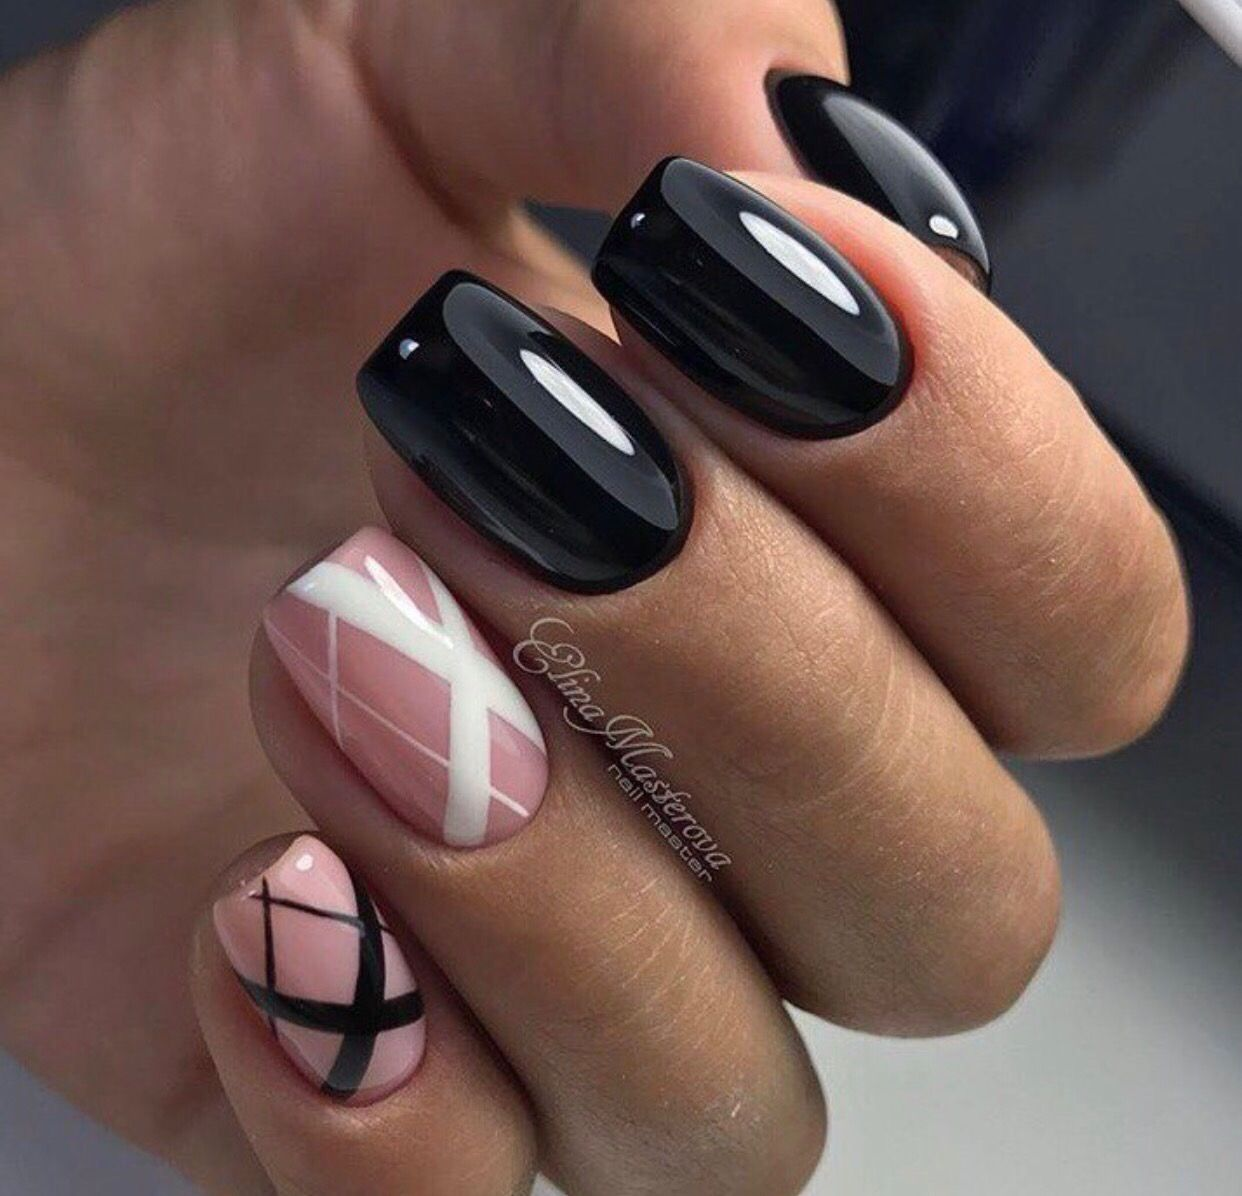 Pin by It\'s All About Fashion on It\'s All About Nails | Pinterest ...